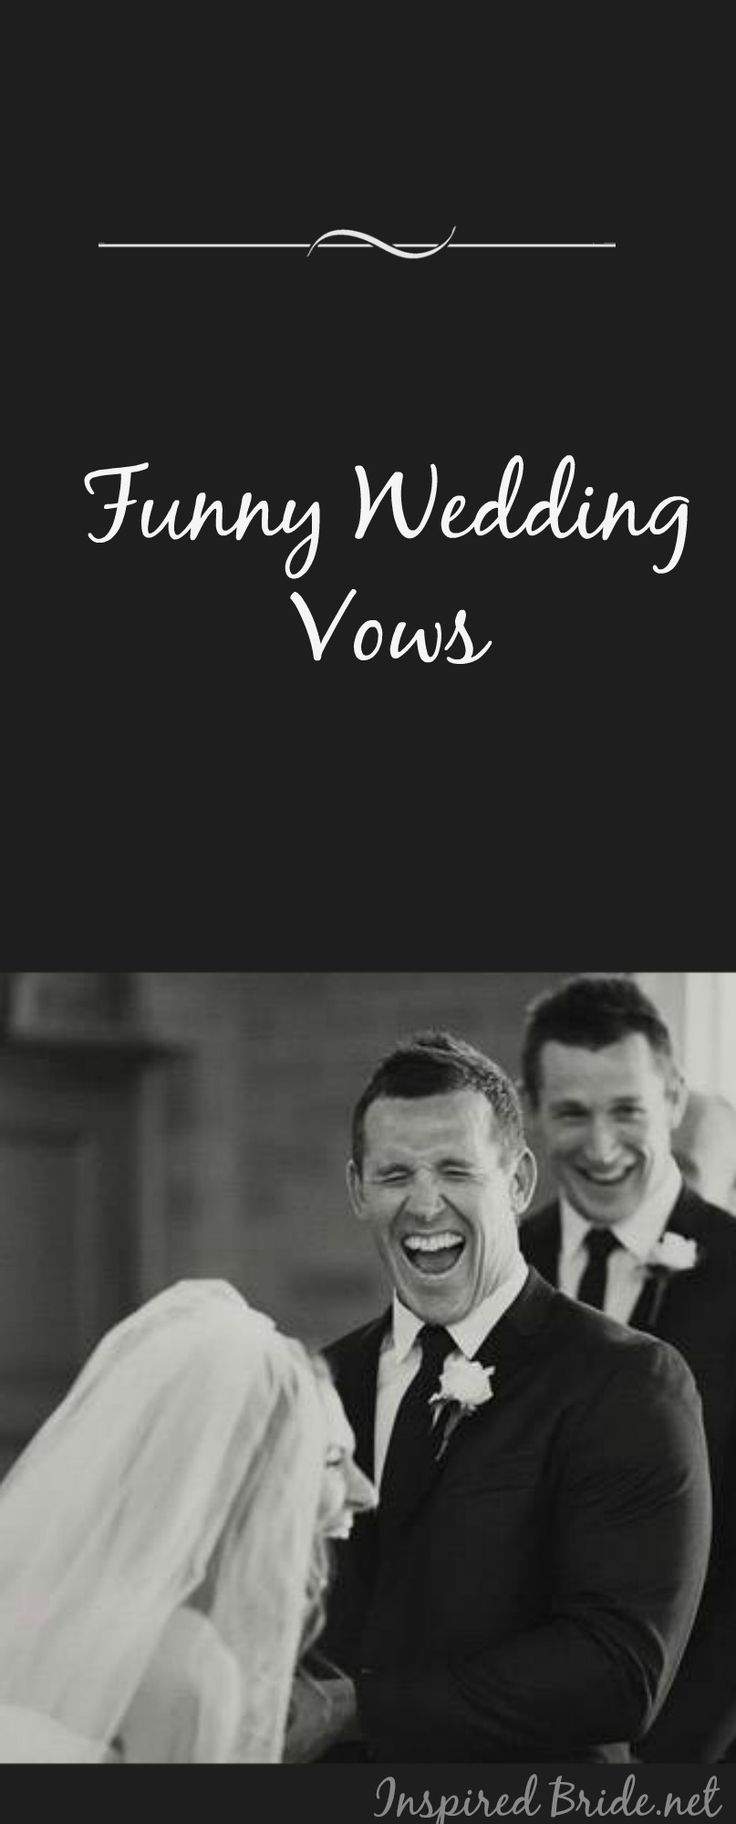 Make your Wedding more Memorable with these Hilarious & Funny Wedding Vows for Bride & Groom. - Inspired Bride